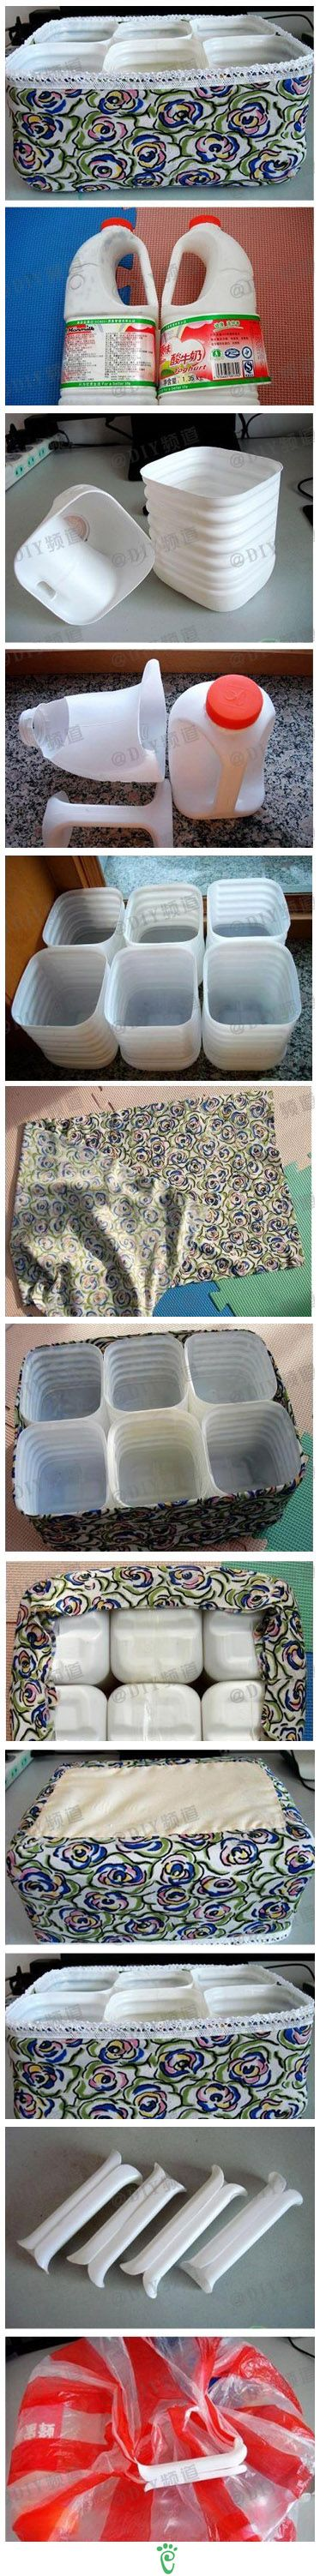 DIY Storage Bin - Use leftover handles to cover plastic bag handles.. easier on the hands